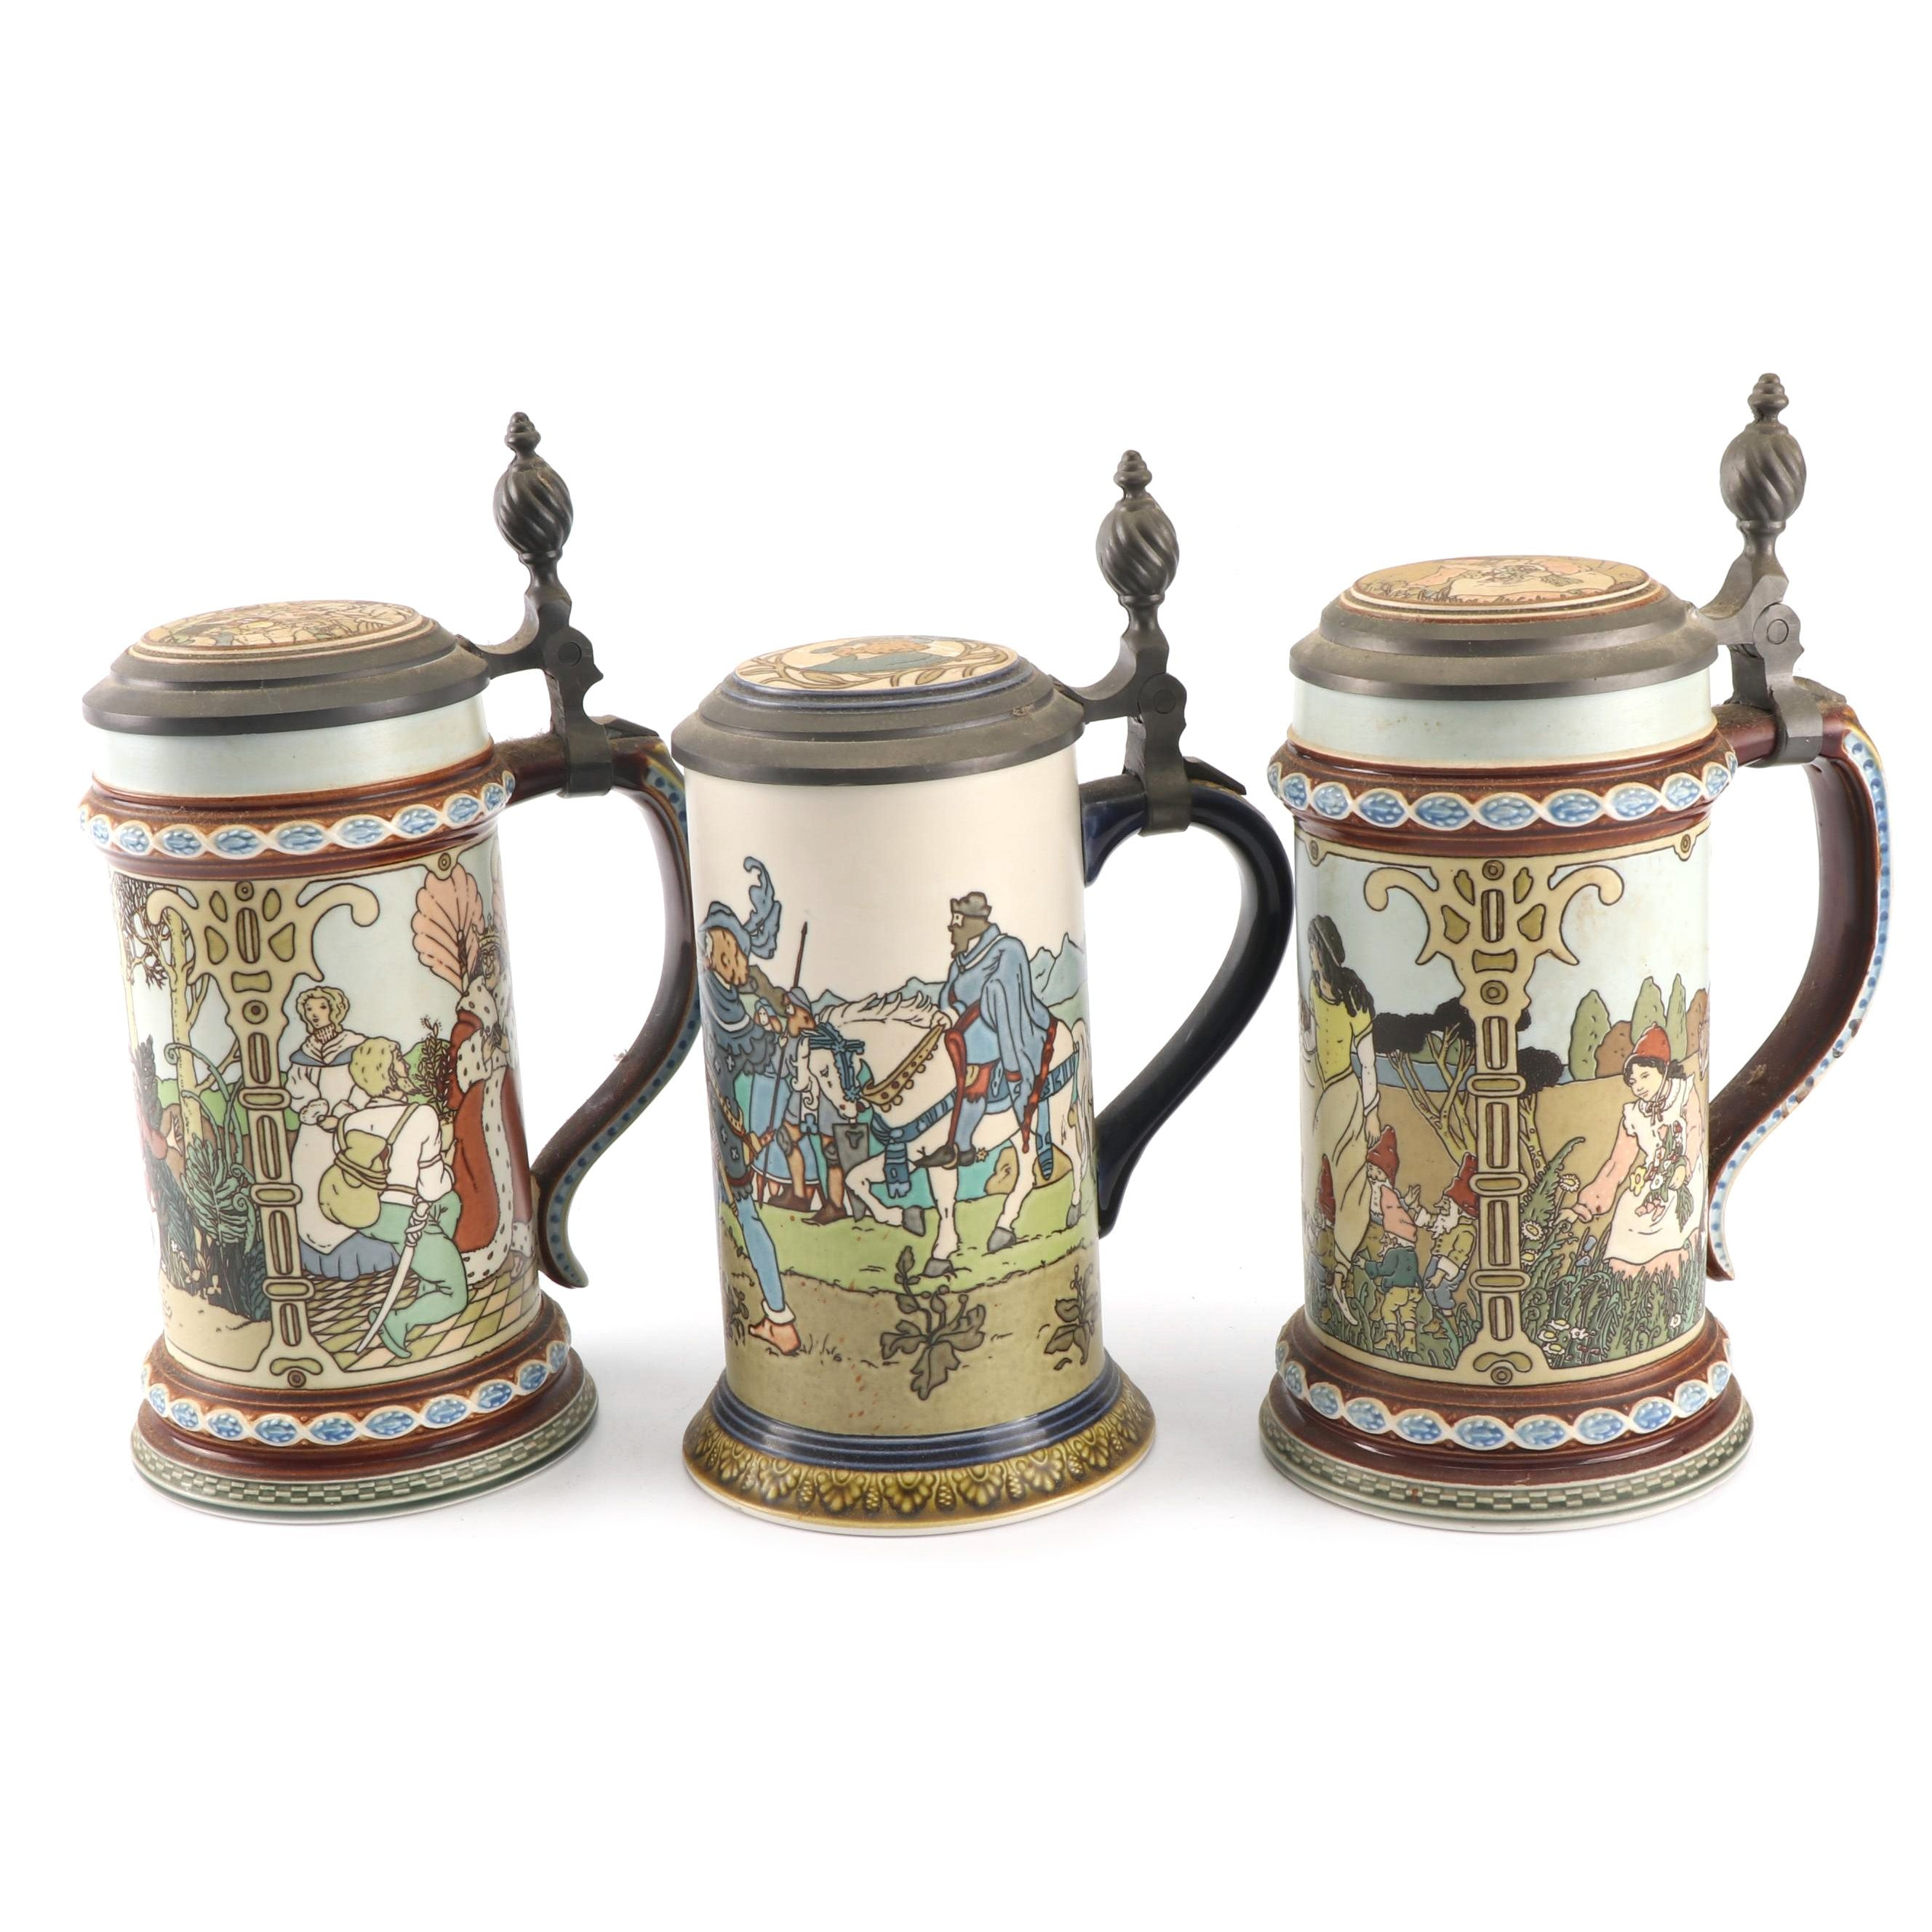 """Mettlach Villeroy & Boch """"Wilhelm Tell"""" and """"The Brothers Grimm"""" Steins"""